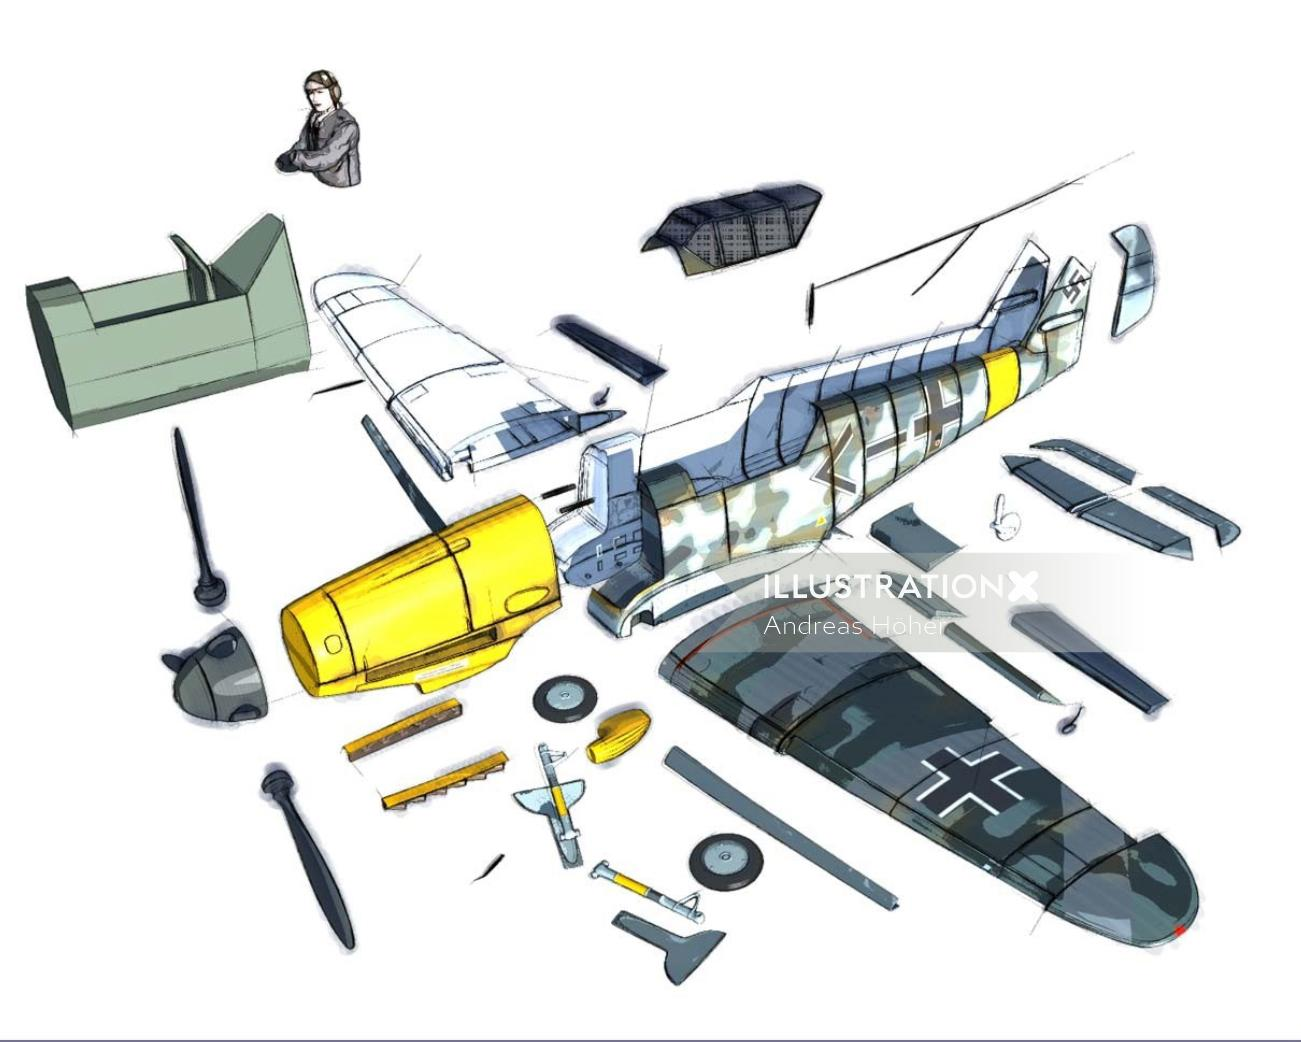 Graphic design of Airplane explanation for Messerschmidt company